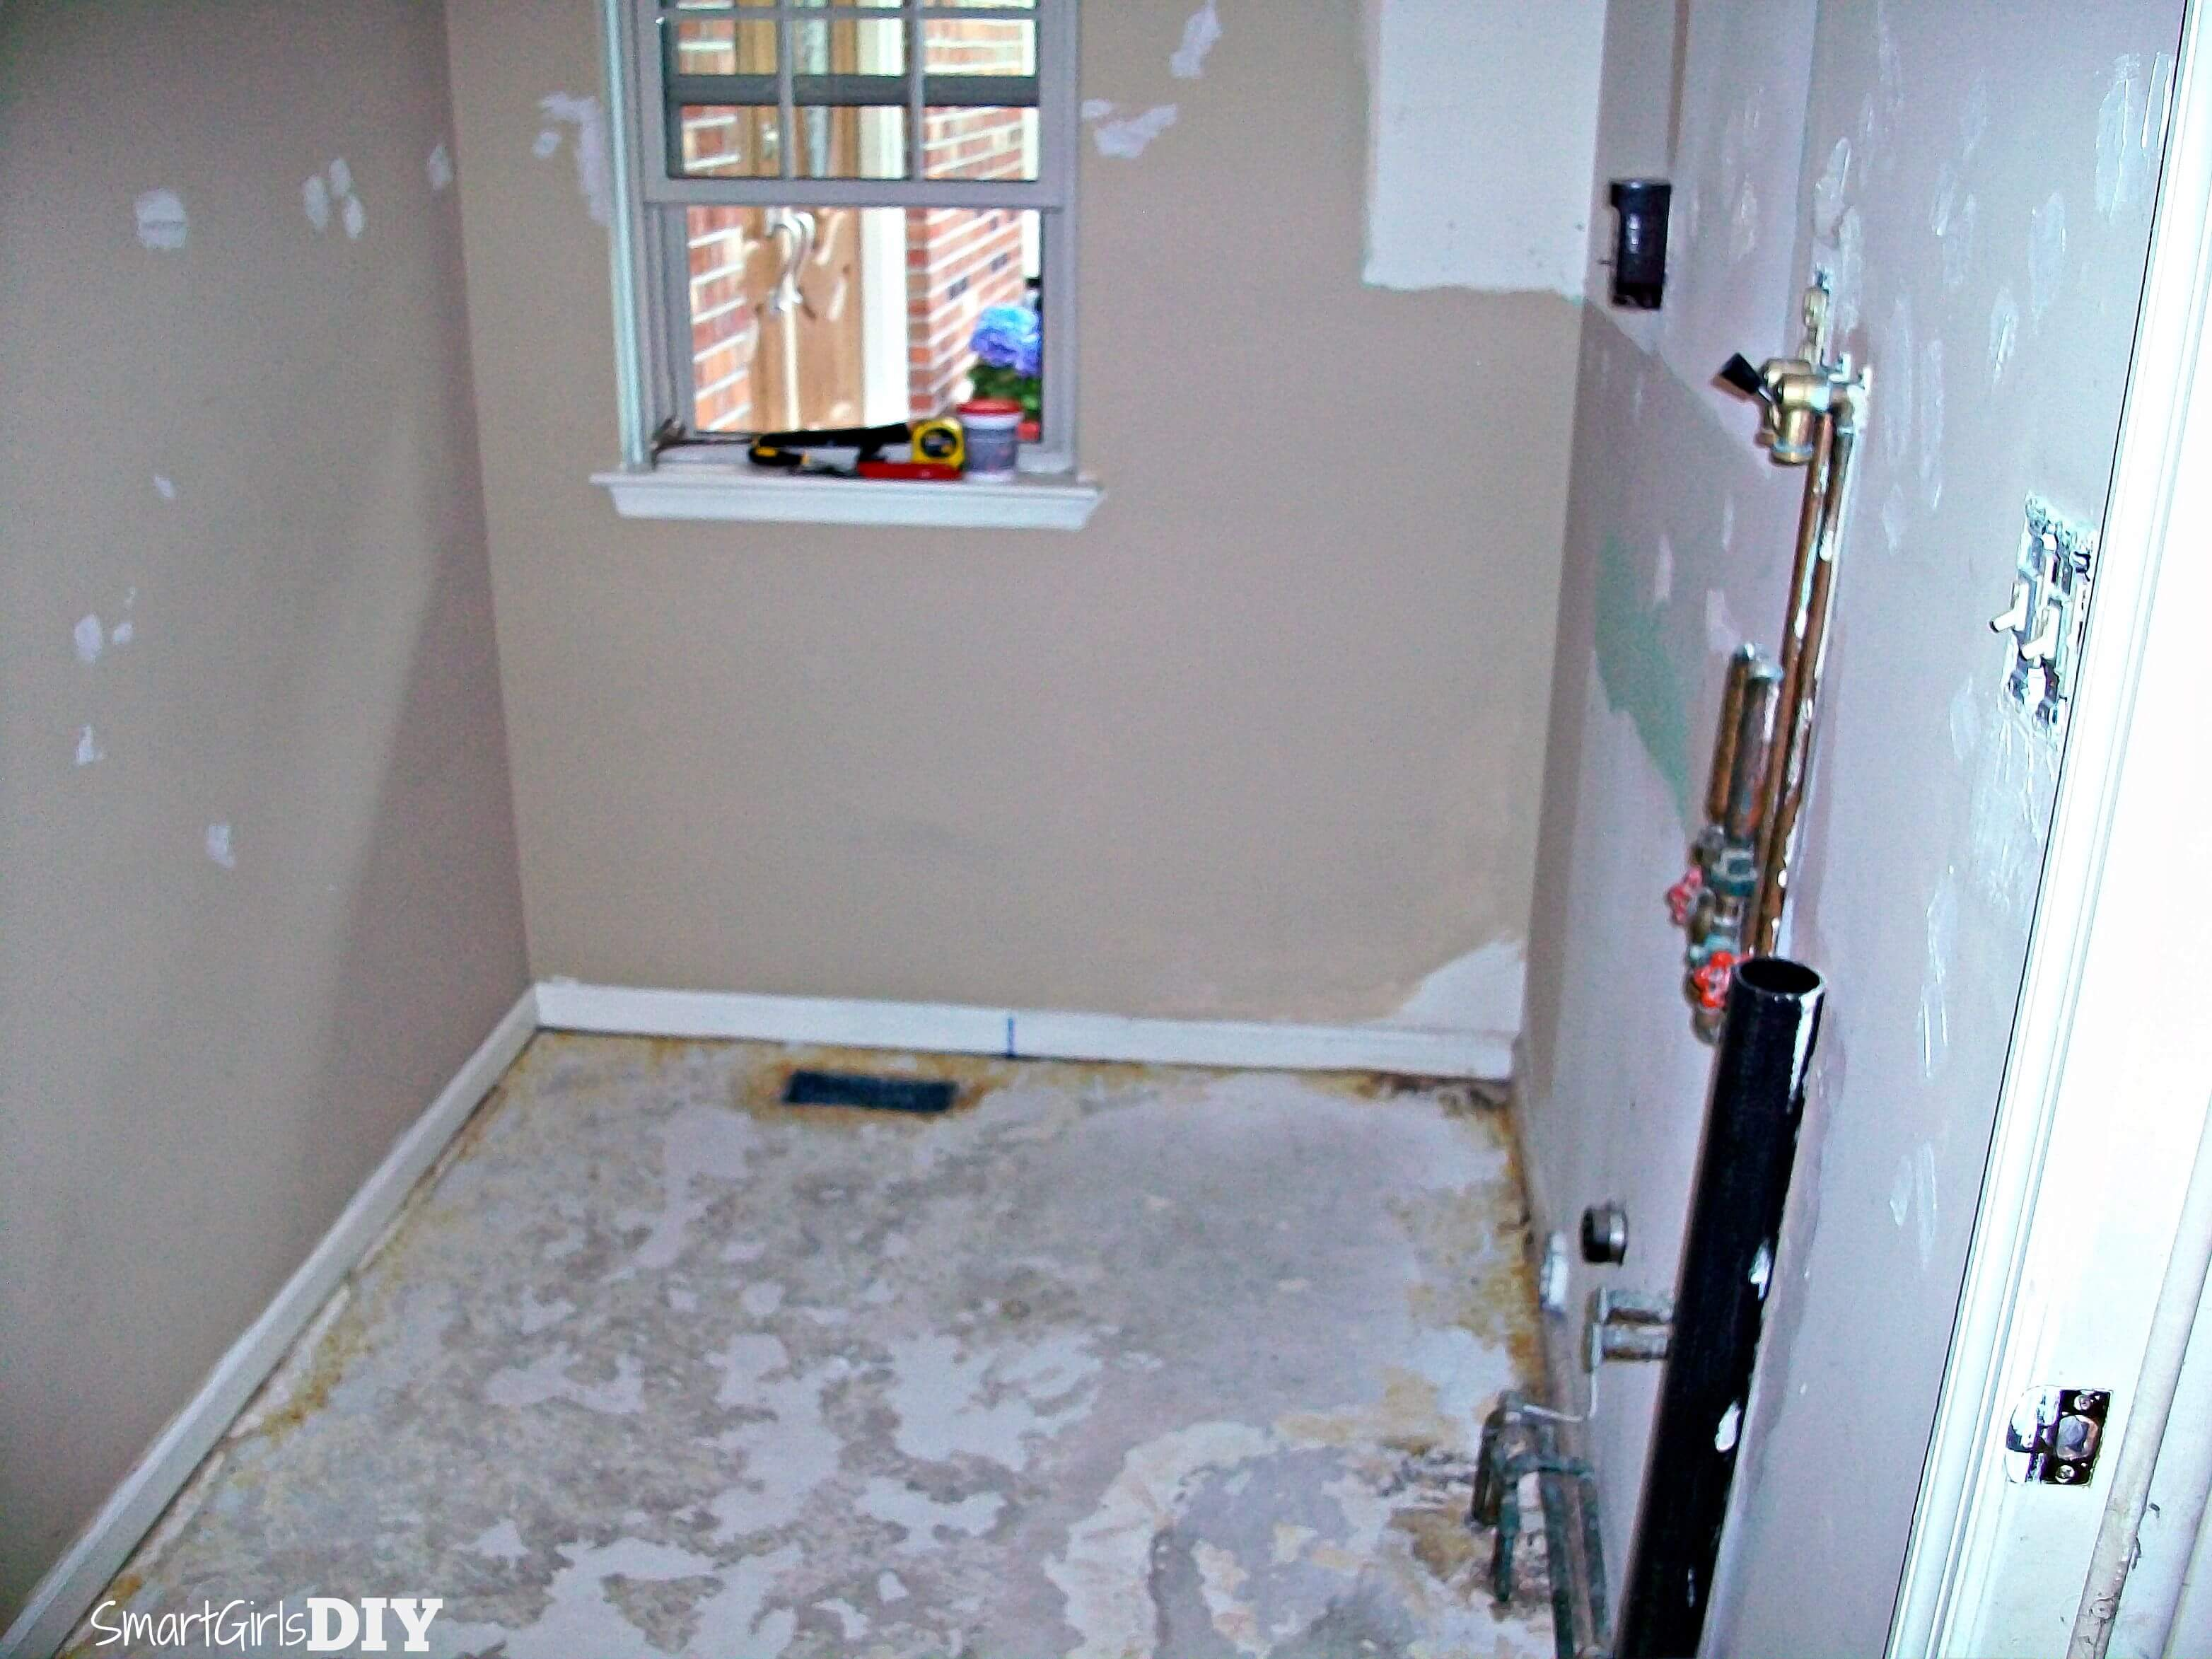 Laundry Room 1: The Initial Renovation